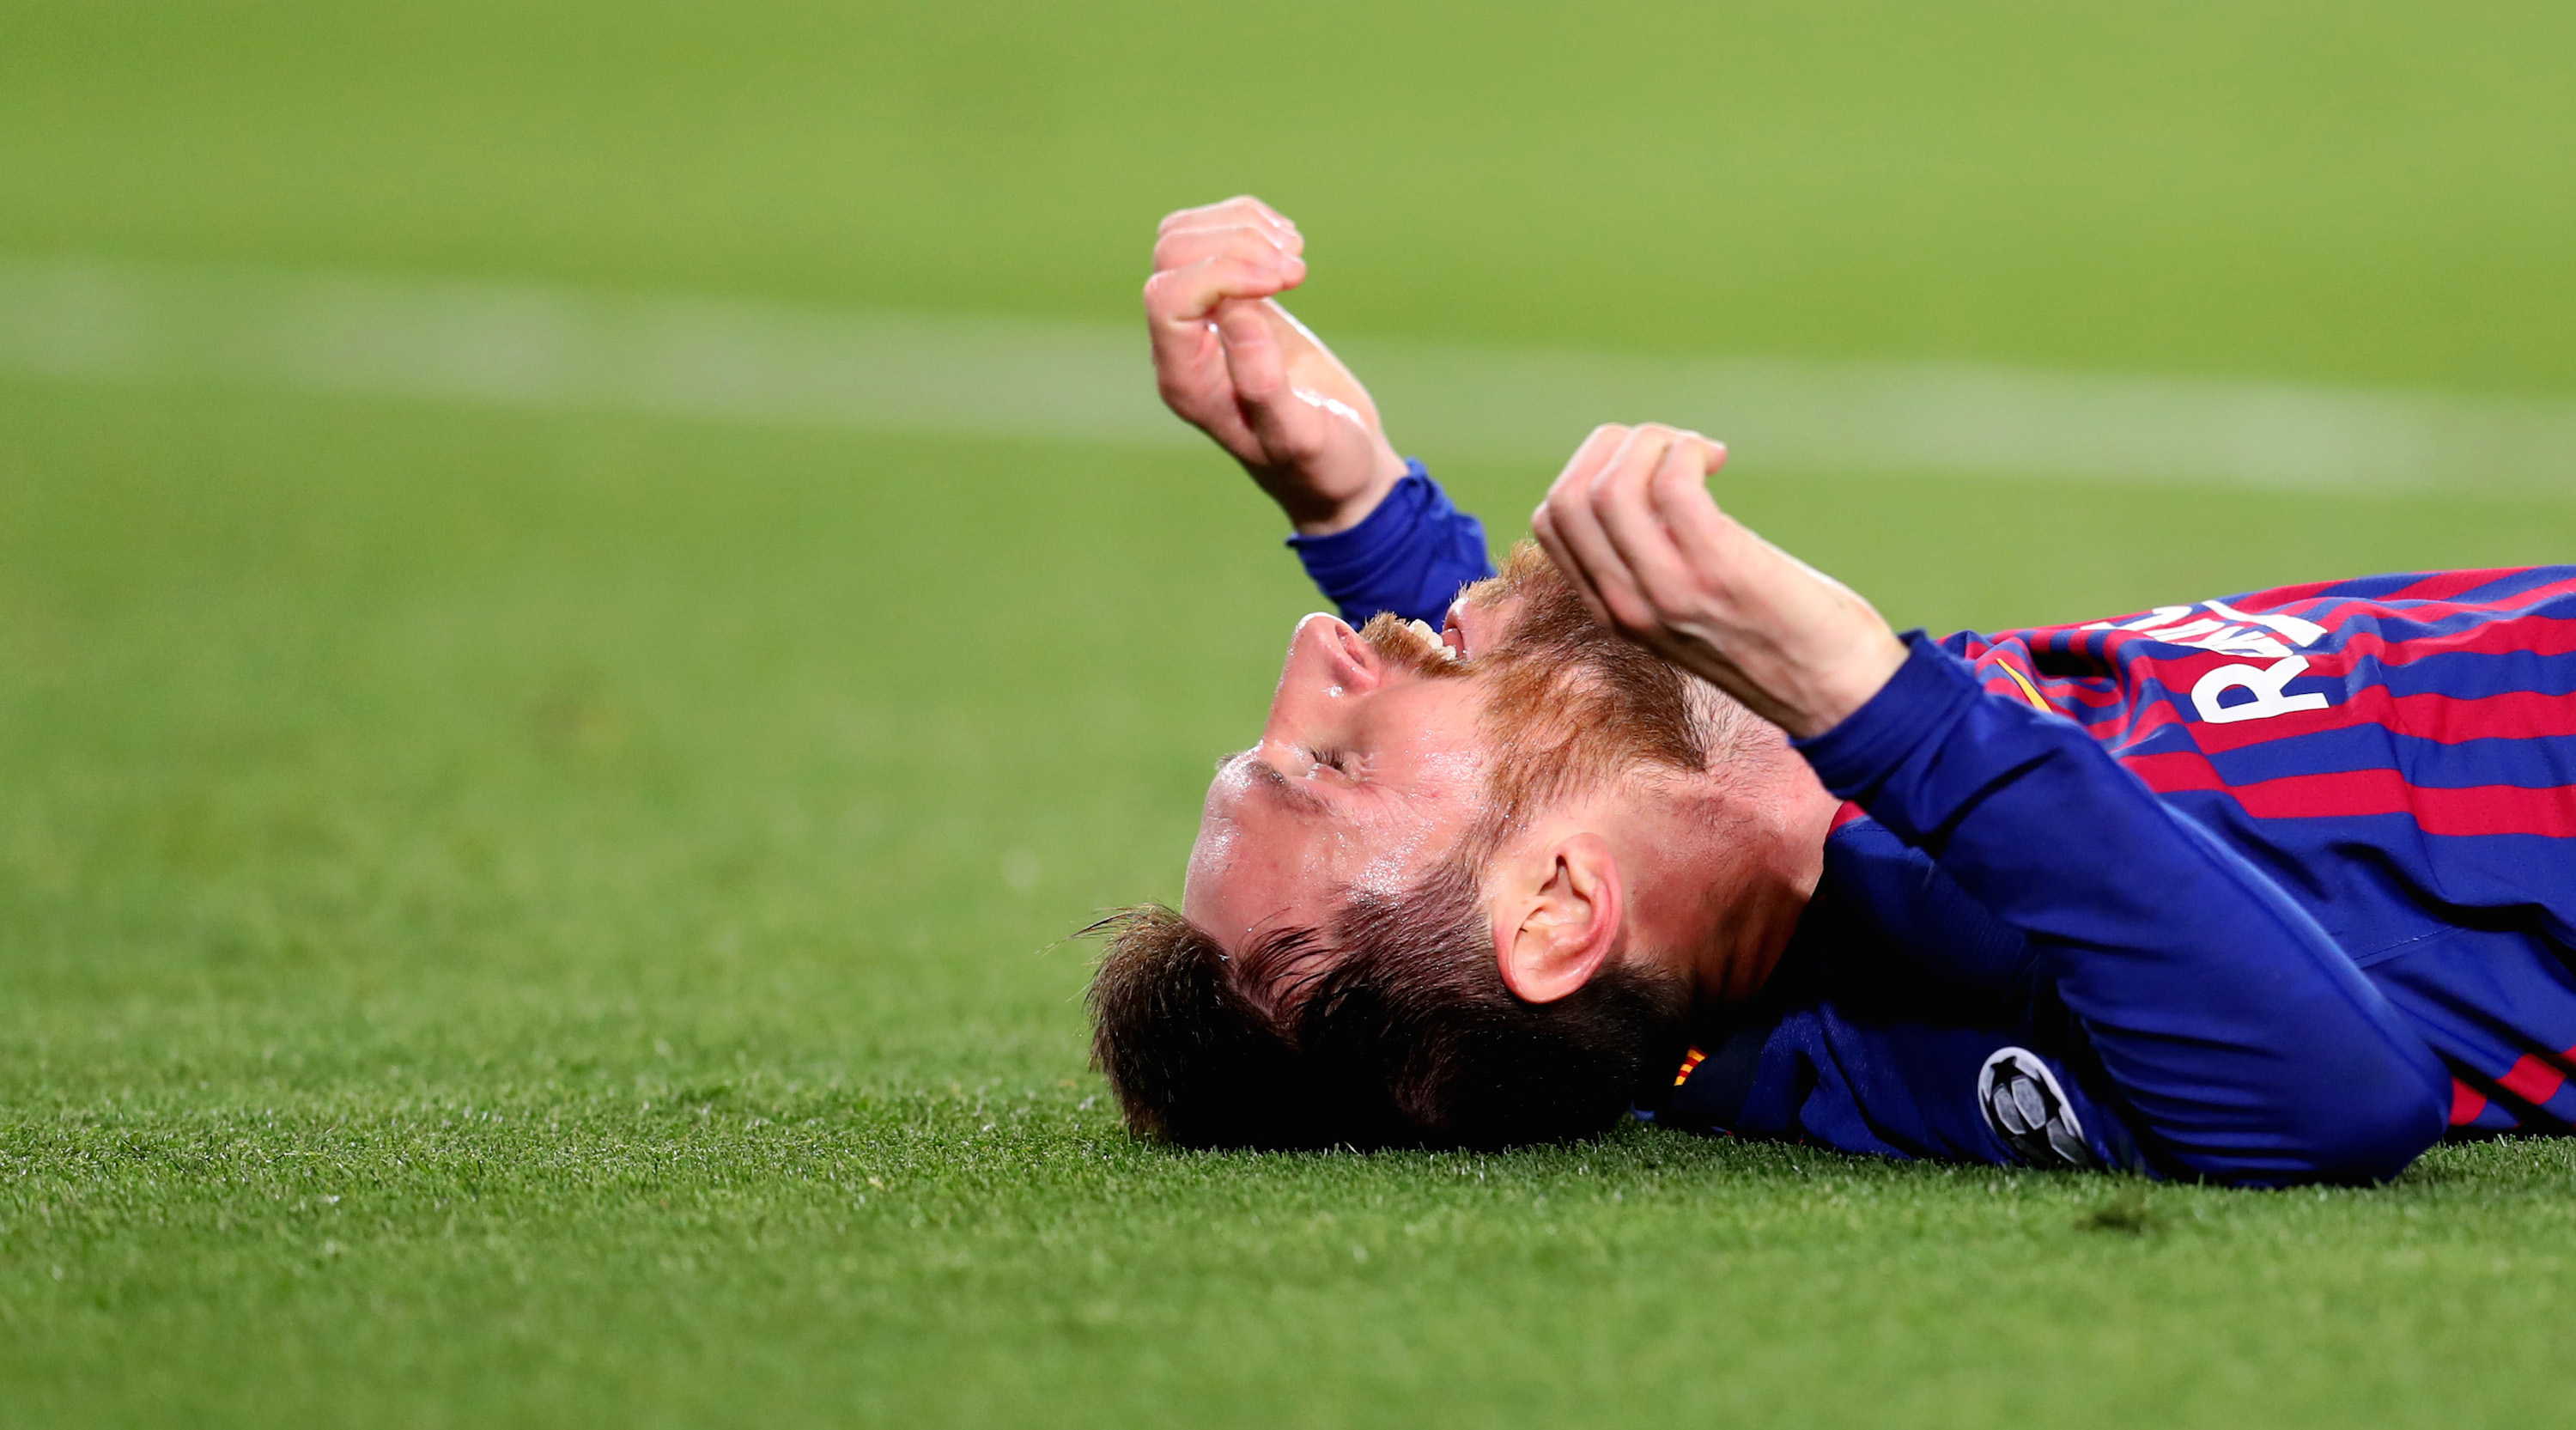 BARCELONA, SPAIN - MAY 01: Lionel Messi reacts on the final whistle3 during the UEFA Champions League Semi Final first leg match between Barcelona and Liverpool at the Nou Camp on May 01, 2019 in Barcelona, Spain. (Photo by Catherine Ivill/Getty Images)